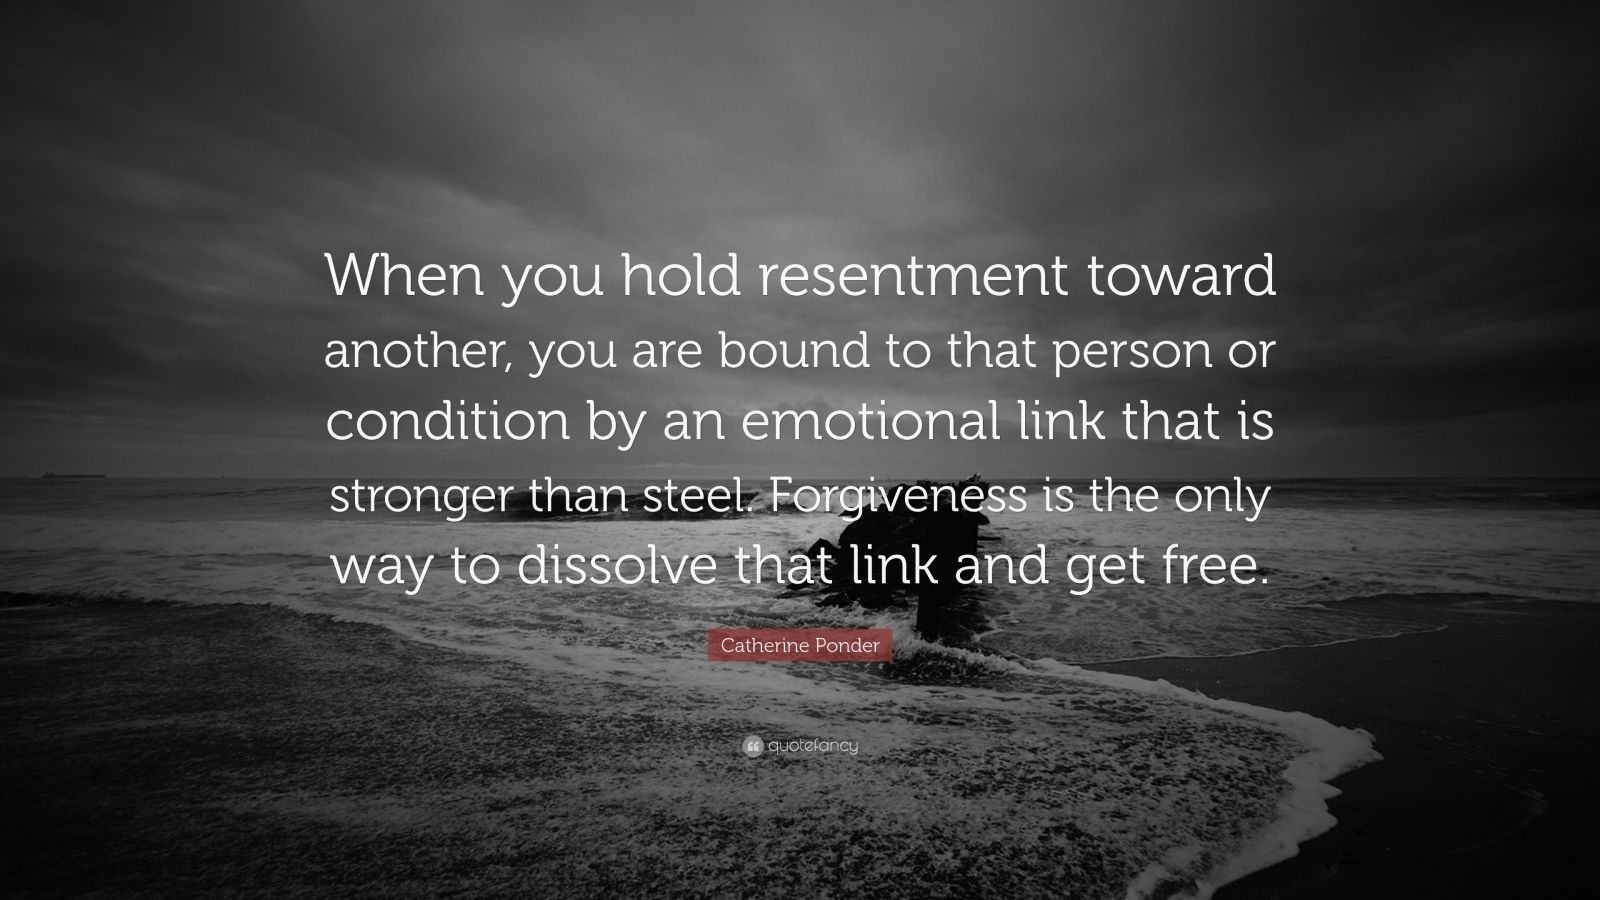 """Catherine Ponder Quote: """"When you hold resentment toward another, you are bound to that person or condition by an emotional link that is stronger than steel. Forgiveness is the only way to dissolve that link and get free."""""""